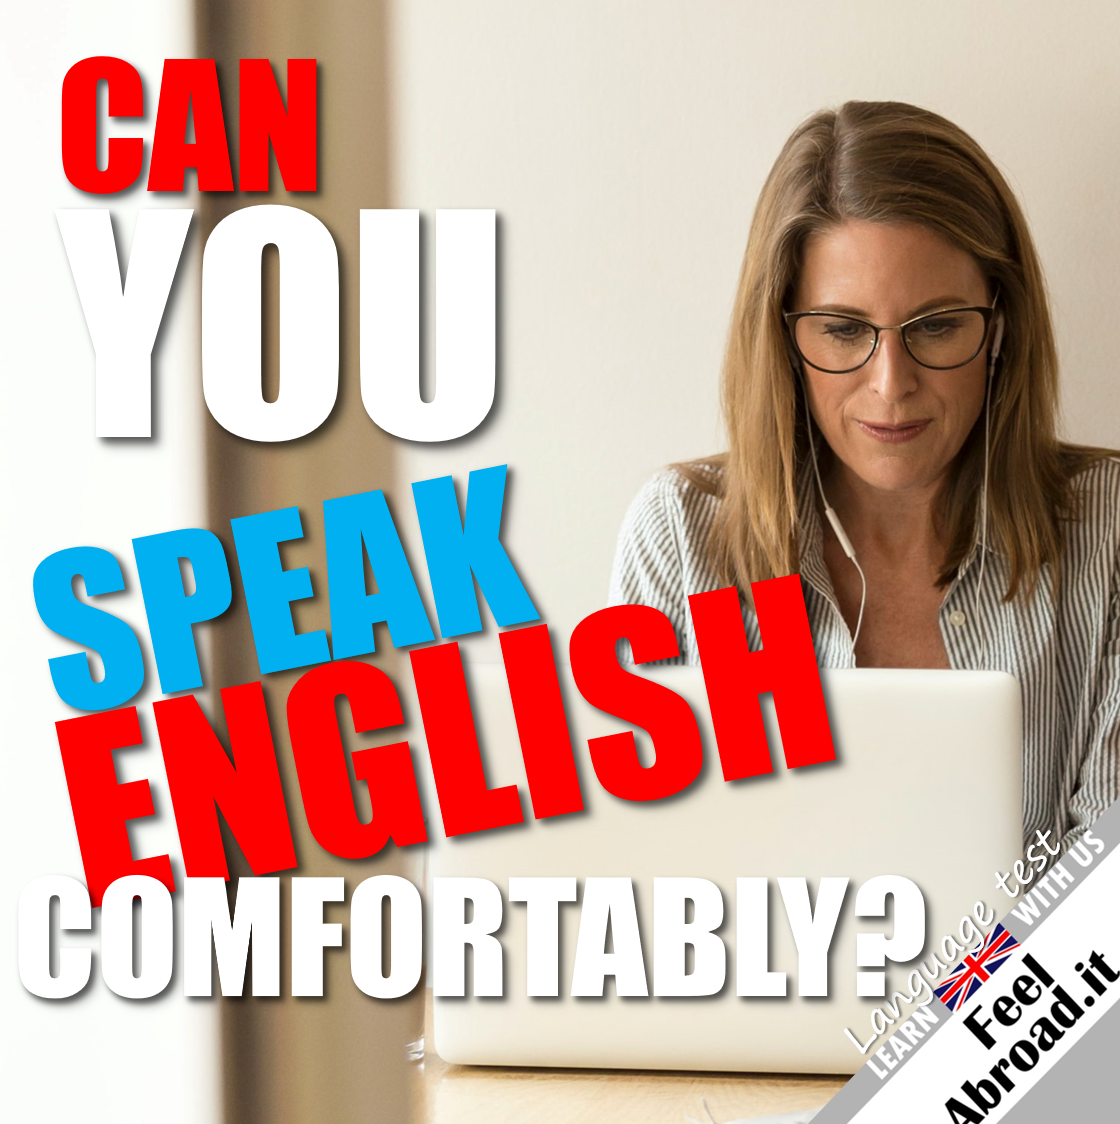 Can you speak English comfortably?